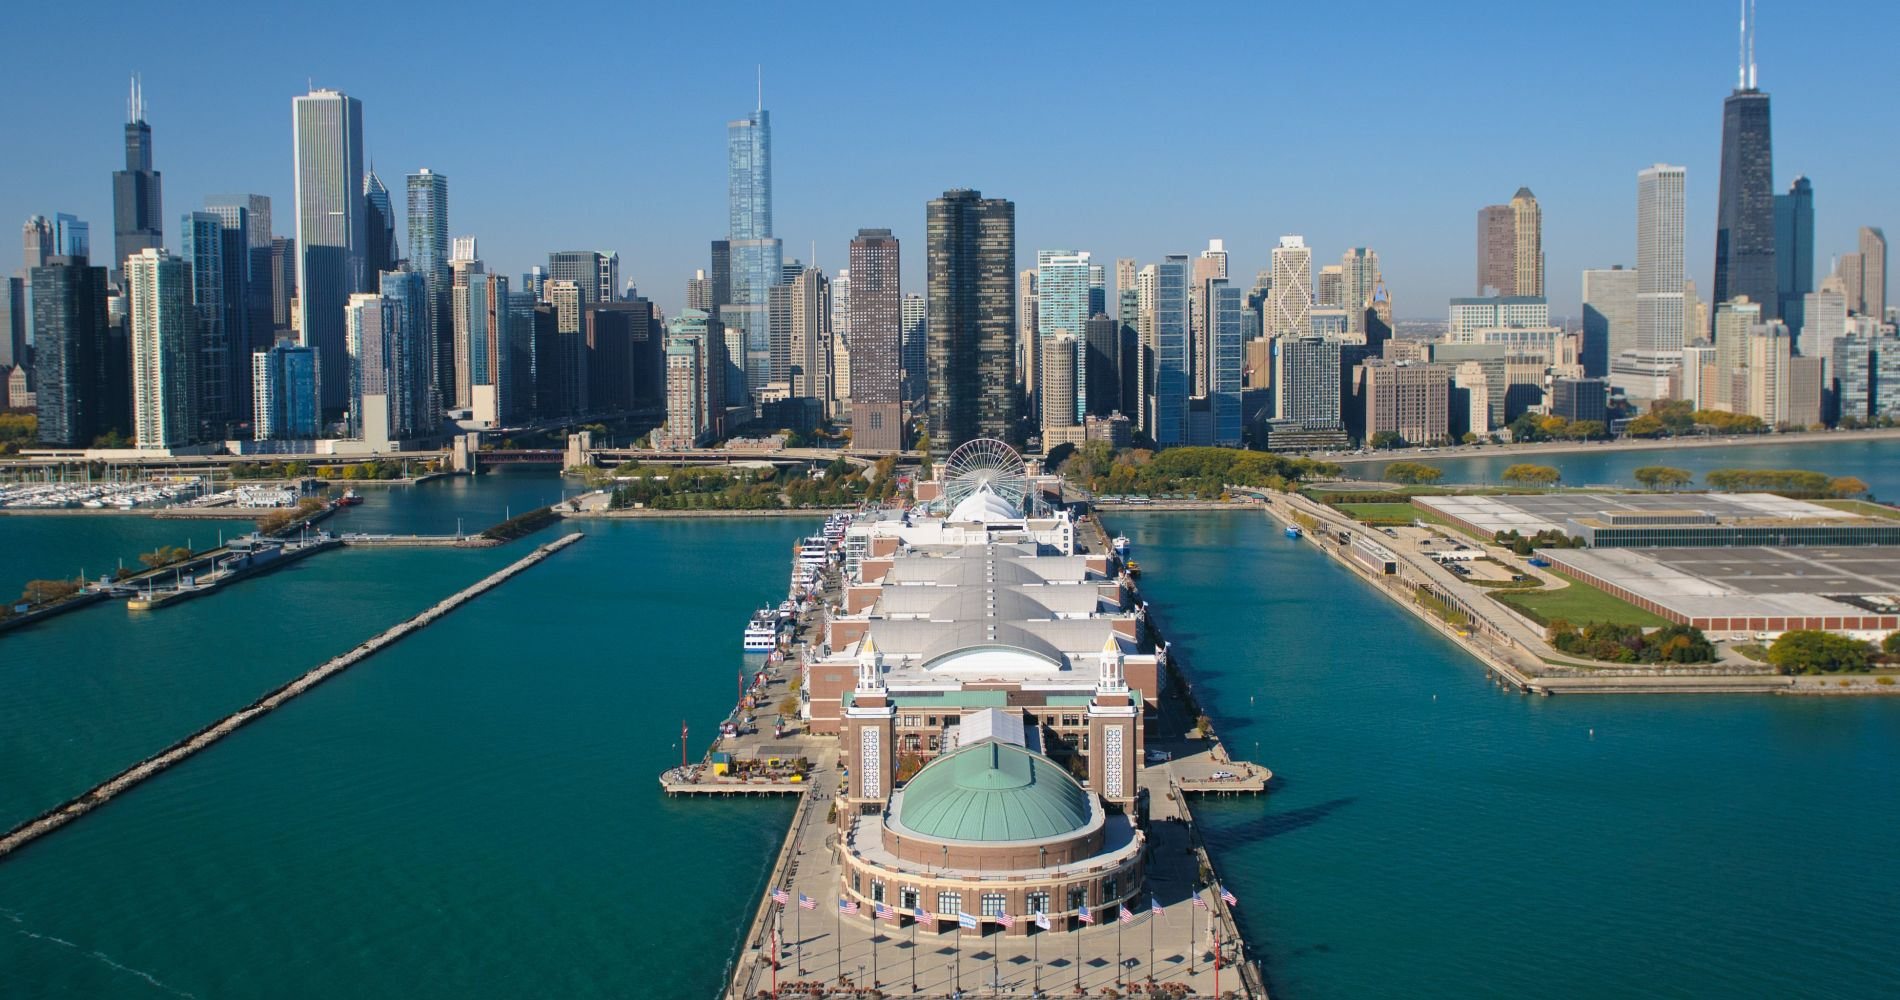 Navy Pier and other attractions of Chicago